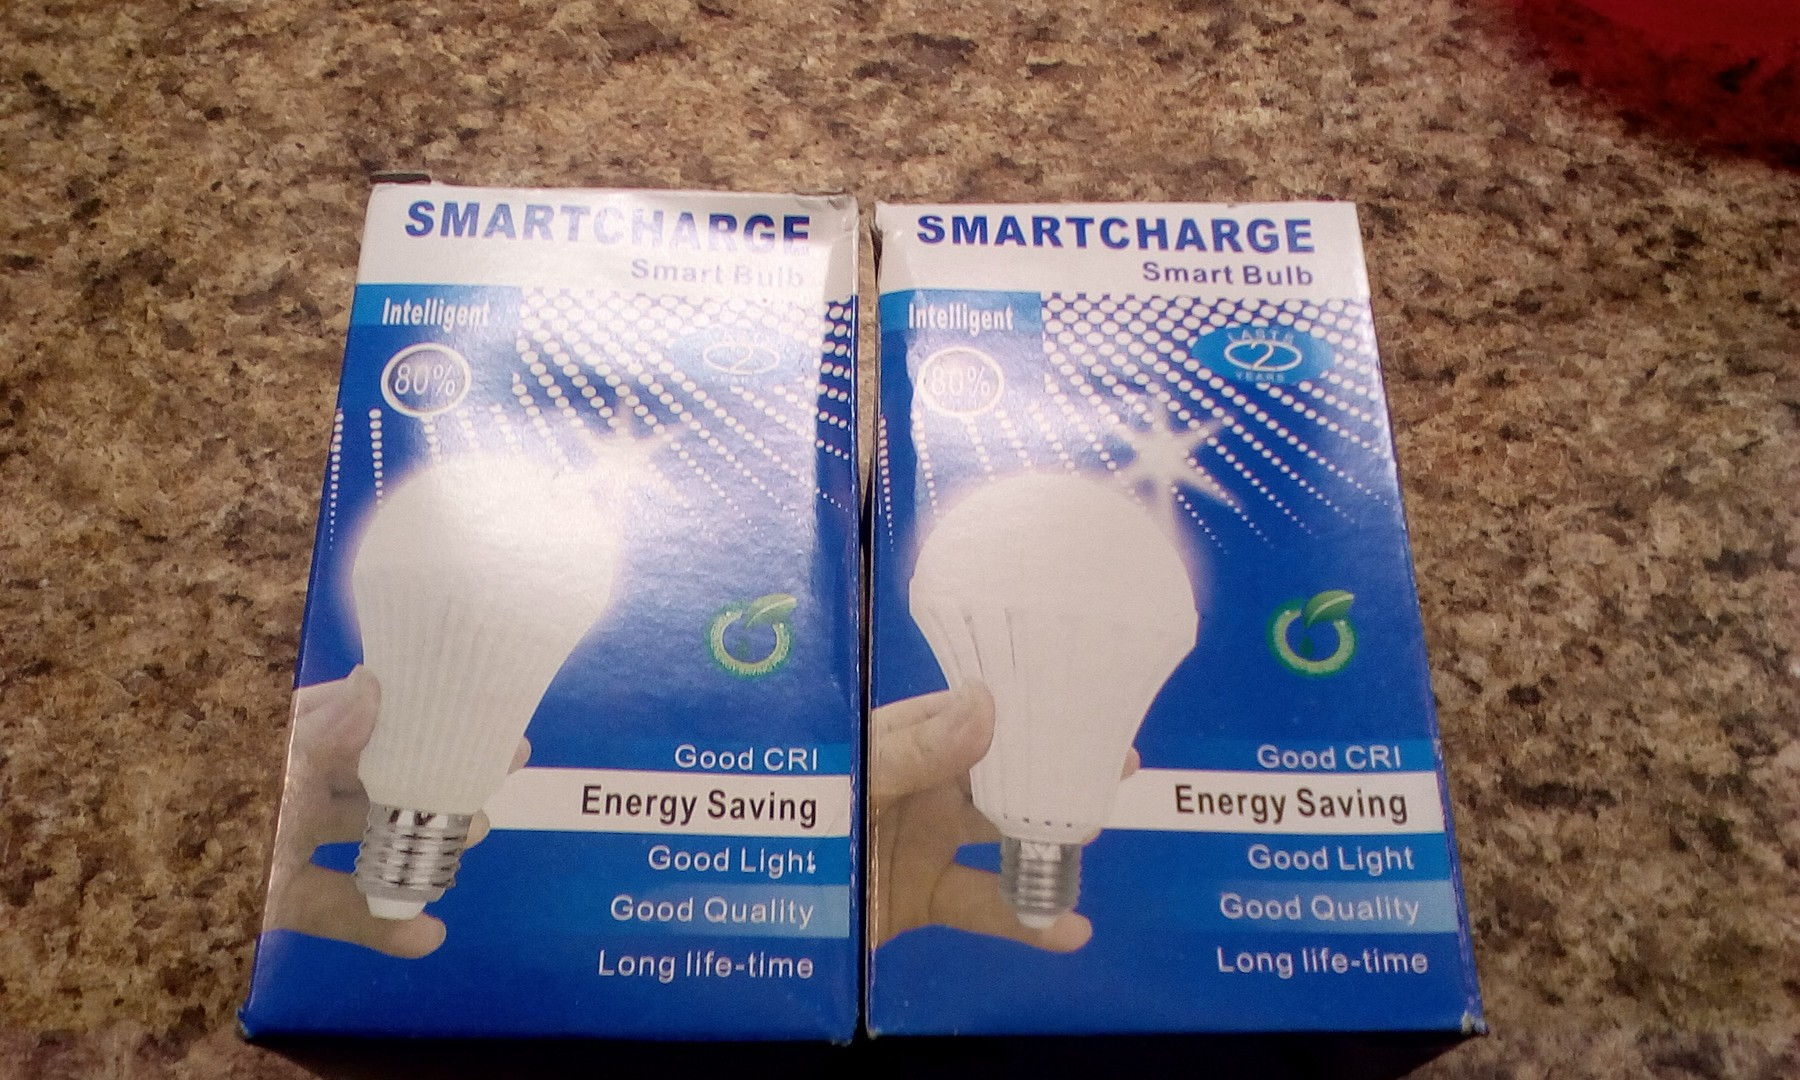 Emergency LED light bulbs